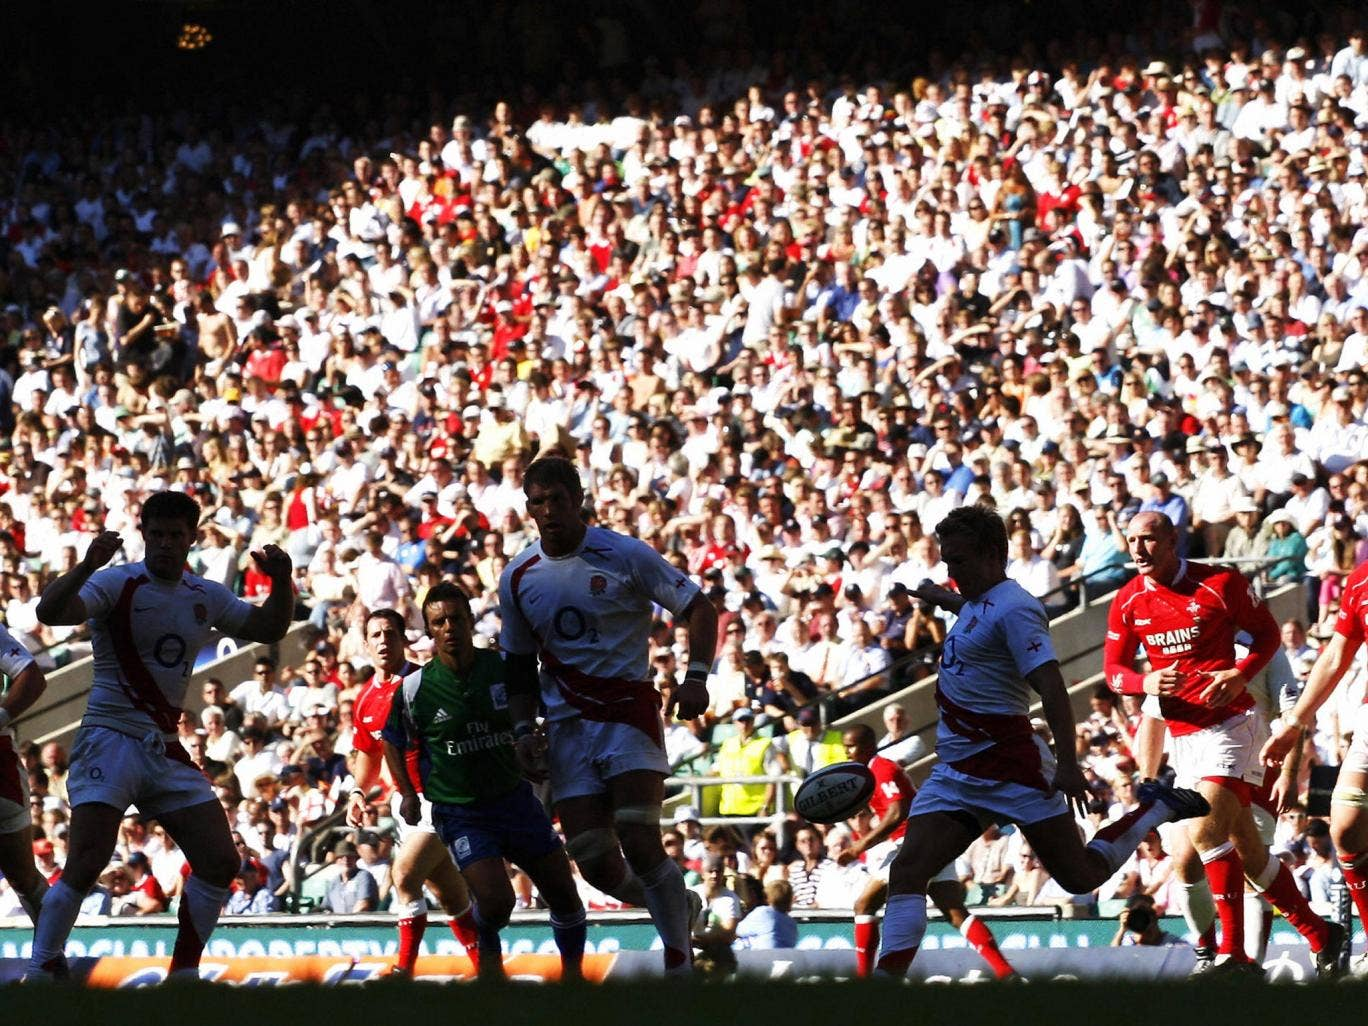 England beat Wales 62-5 in a 2007 World Cup warm-up game